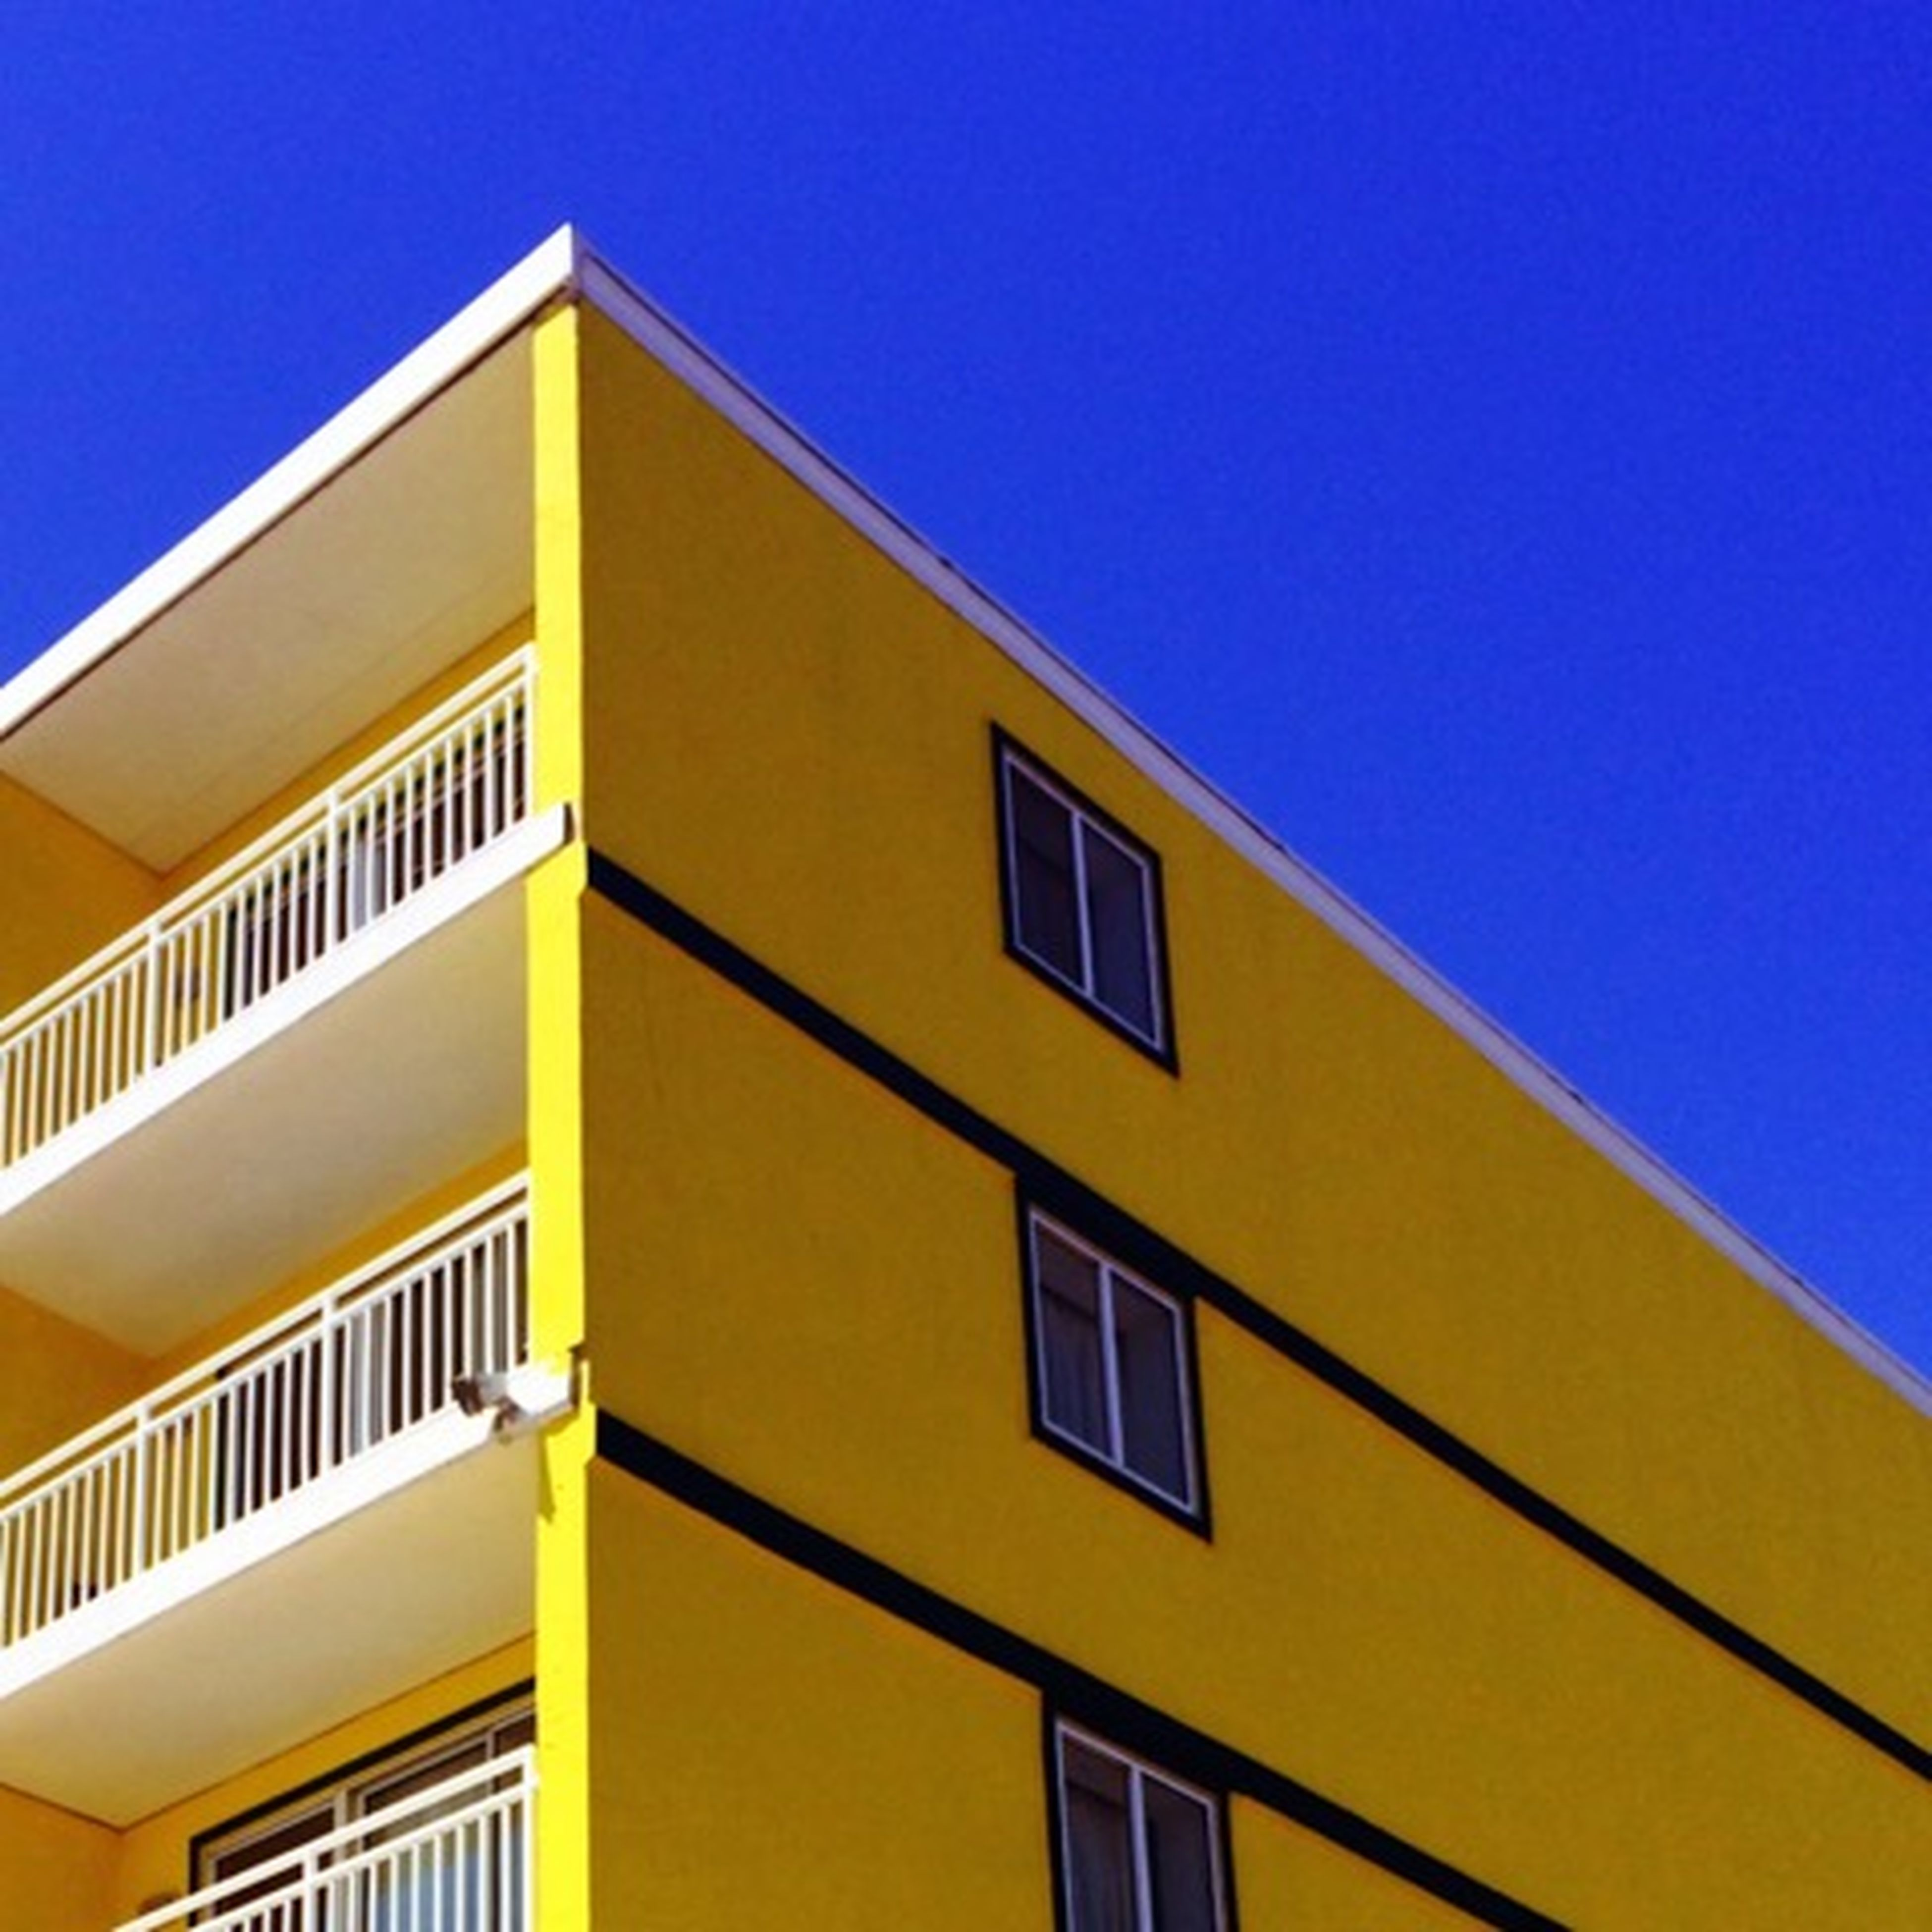 architecture, built structure, building exterior, low angle view, window, residential building, residential structure, building, clear sky, blue, yellow, house, balcony, city, no people, copy space, outdoors, day, high section, apartment